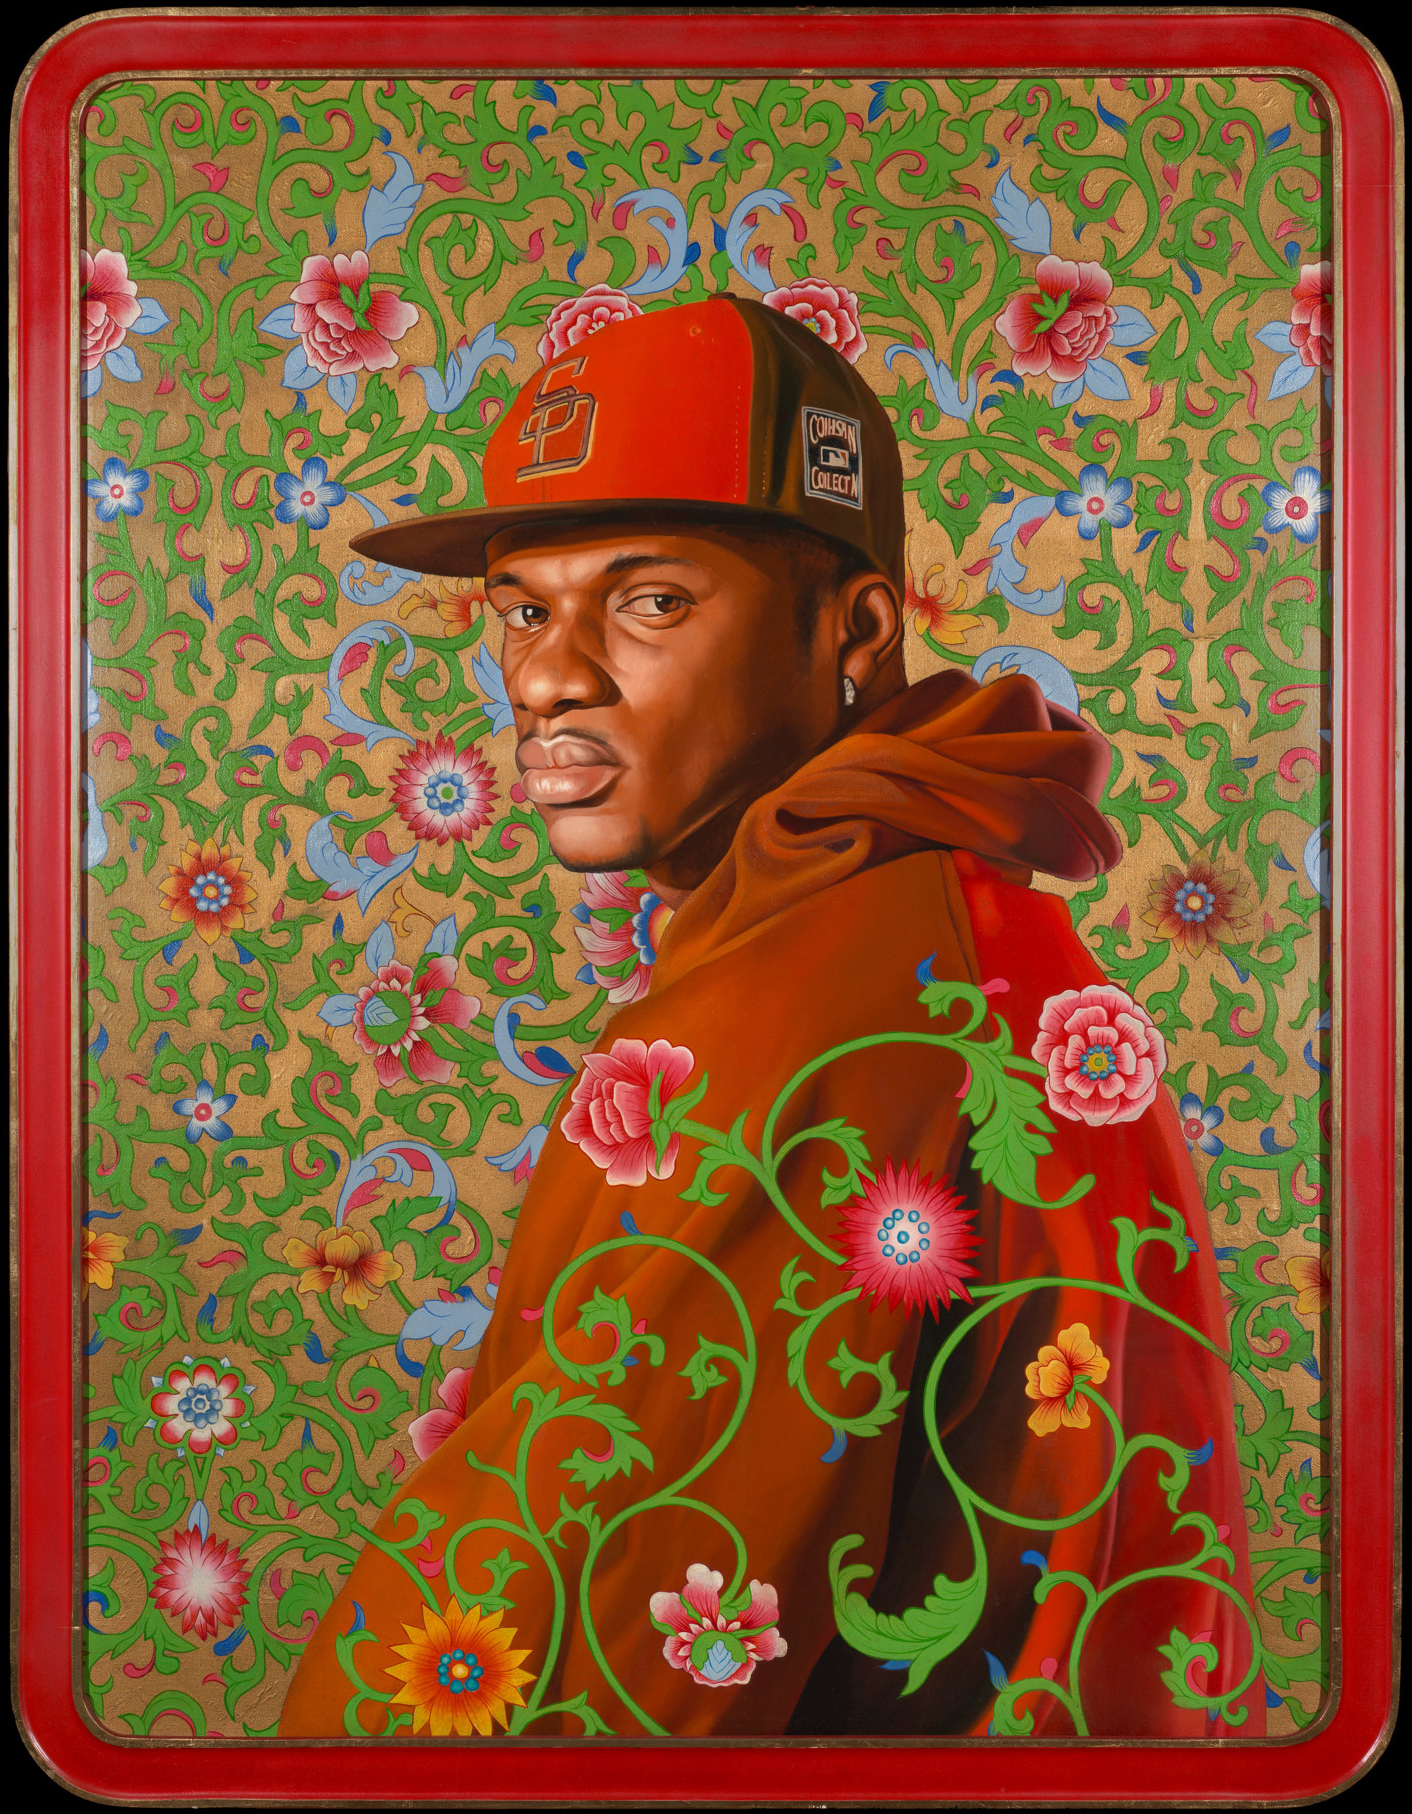 Kehinde Wiley (American, b.1977), Cheick I, 2007. Oil and enamel on canvas, 46 × 34 in. Gift of Susy and Jack Wadsworth, Class of 1961, M.2017.3